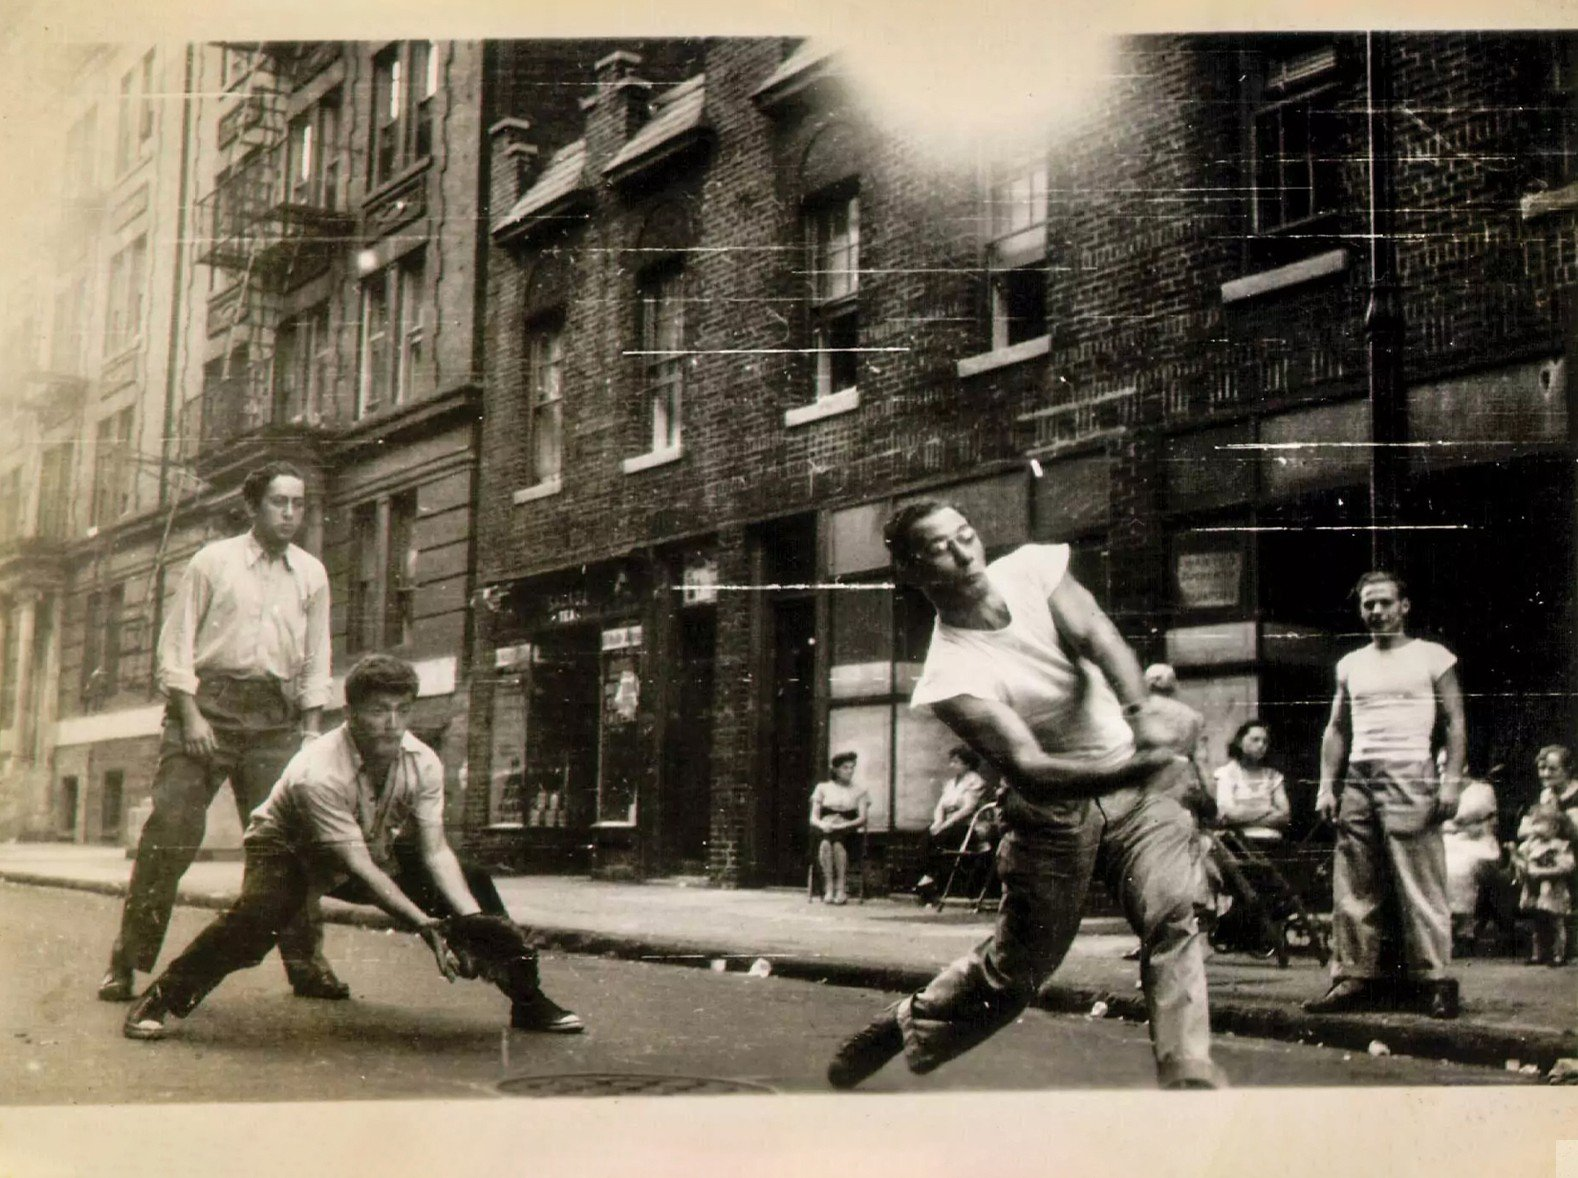 A group of young adults play stickball on the street. The batter takes a swing as the catcher and umpire wait expectantly behind